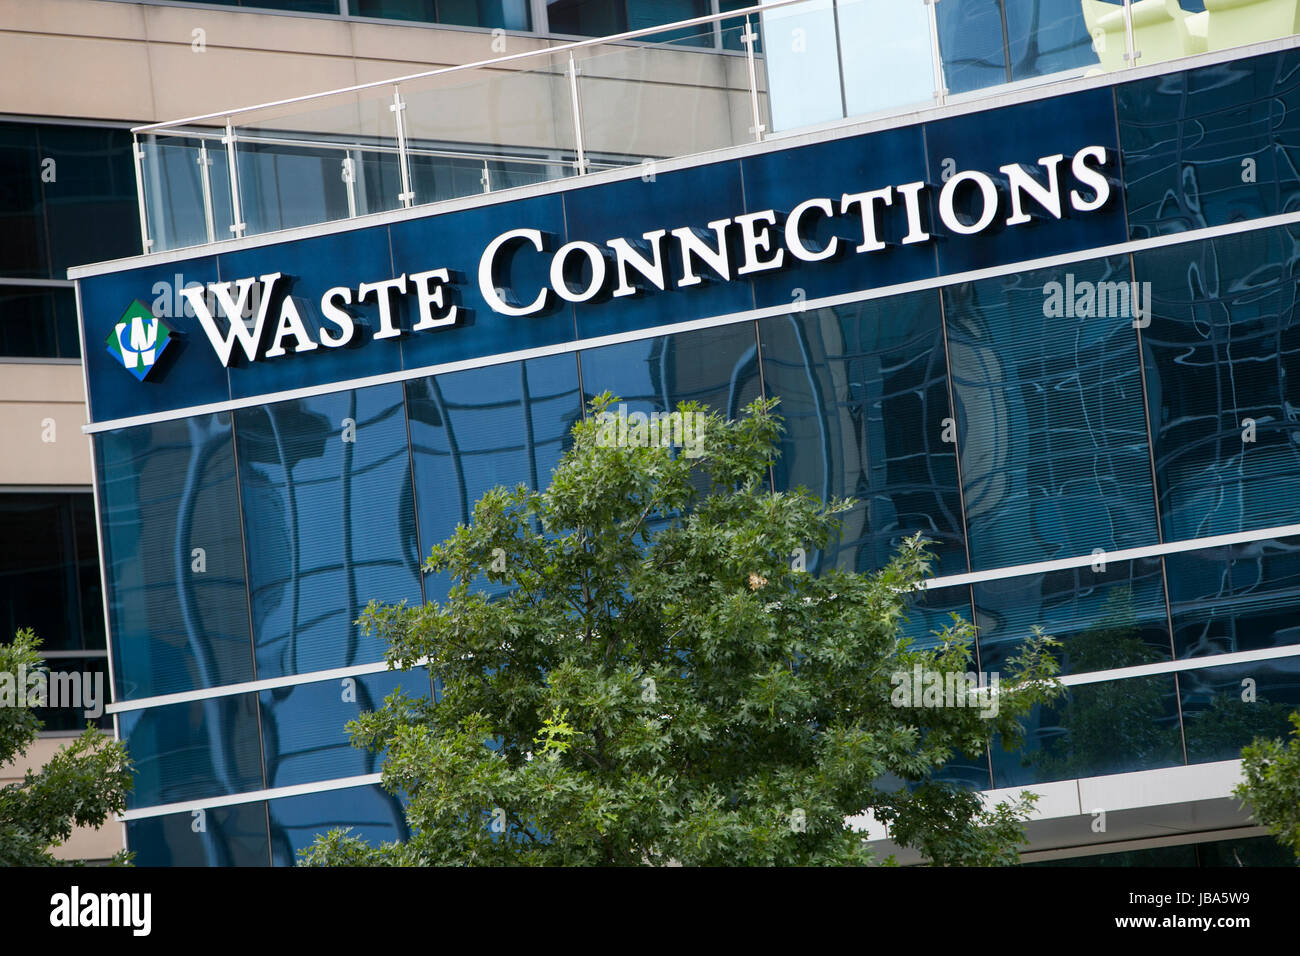 A logo sign outside of a facility occupied by Waste Connections, Inc., in The Woodlands, Texas, on May 28, 2017. - Stock Image